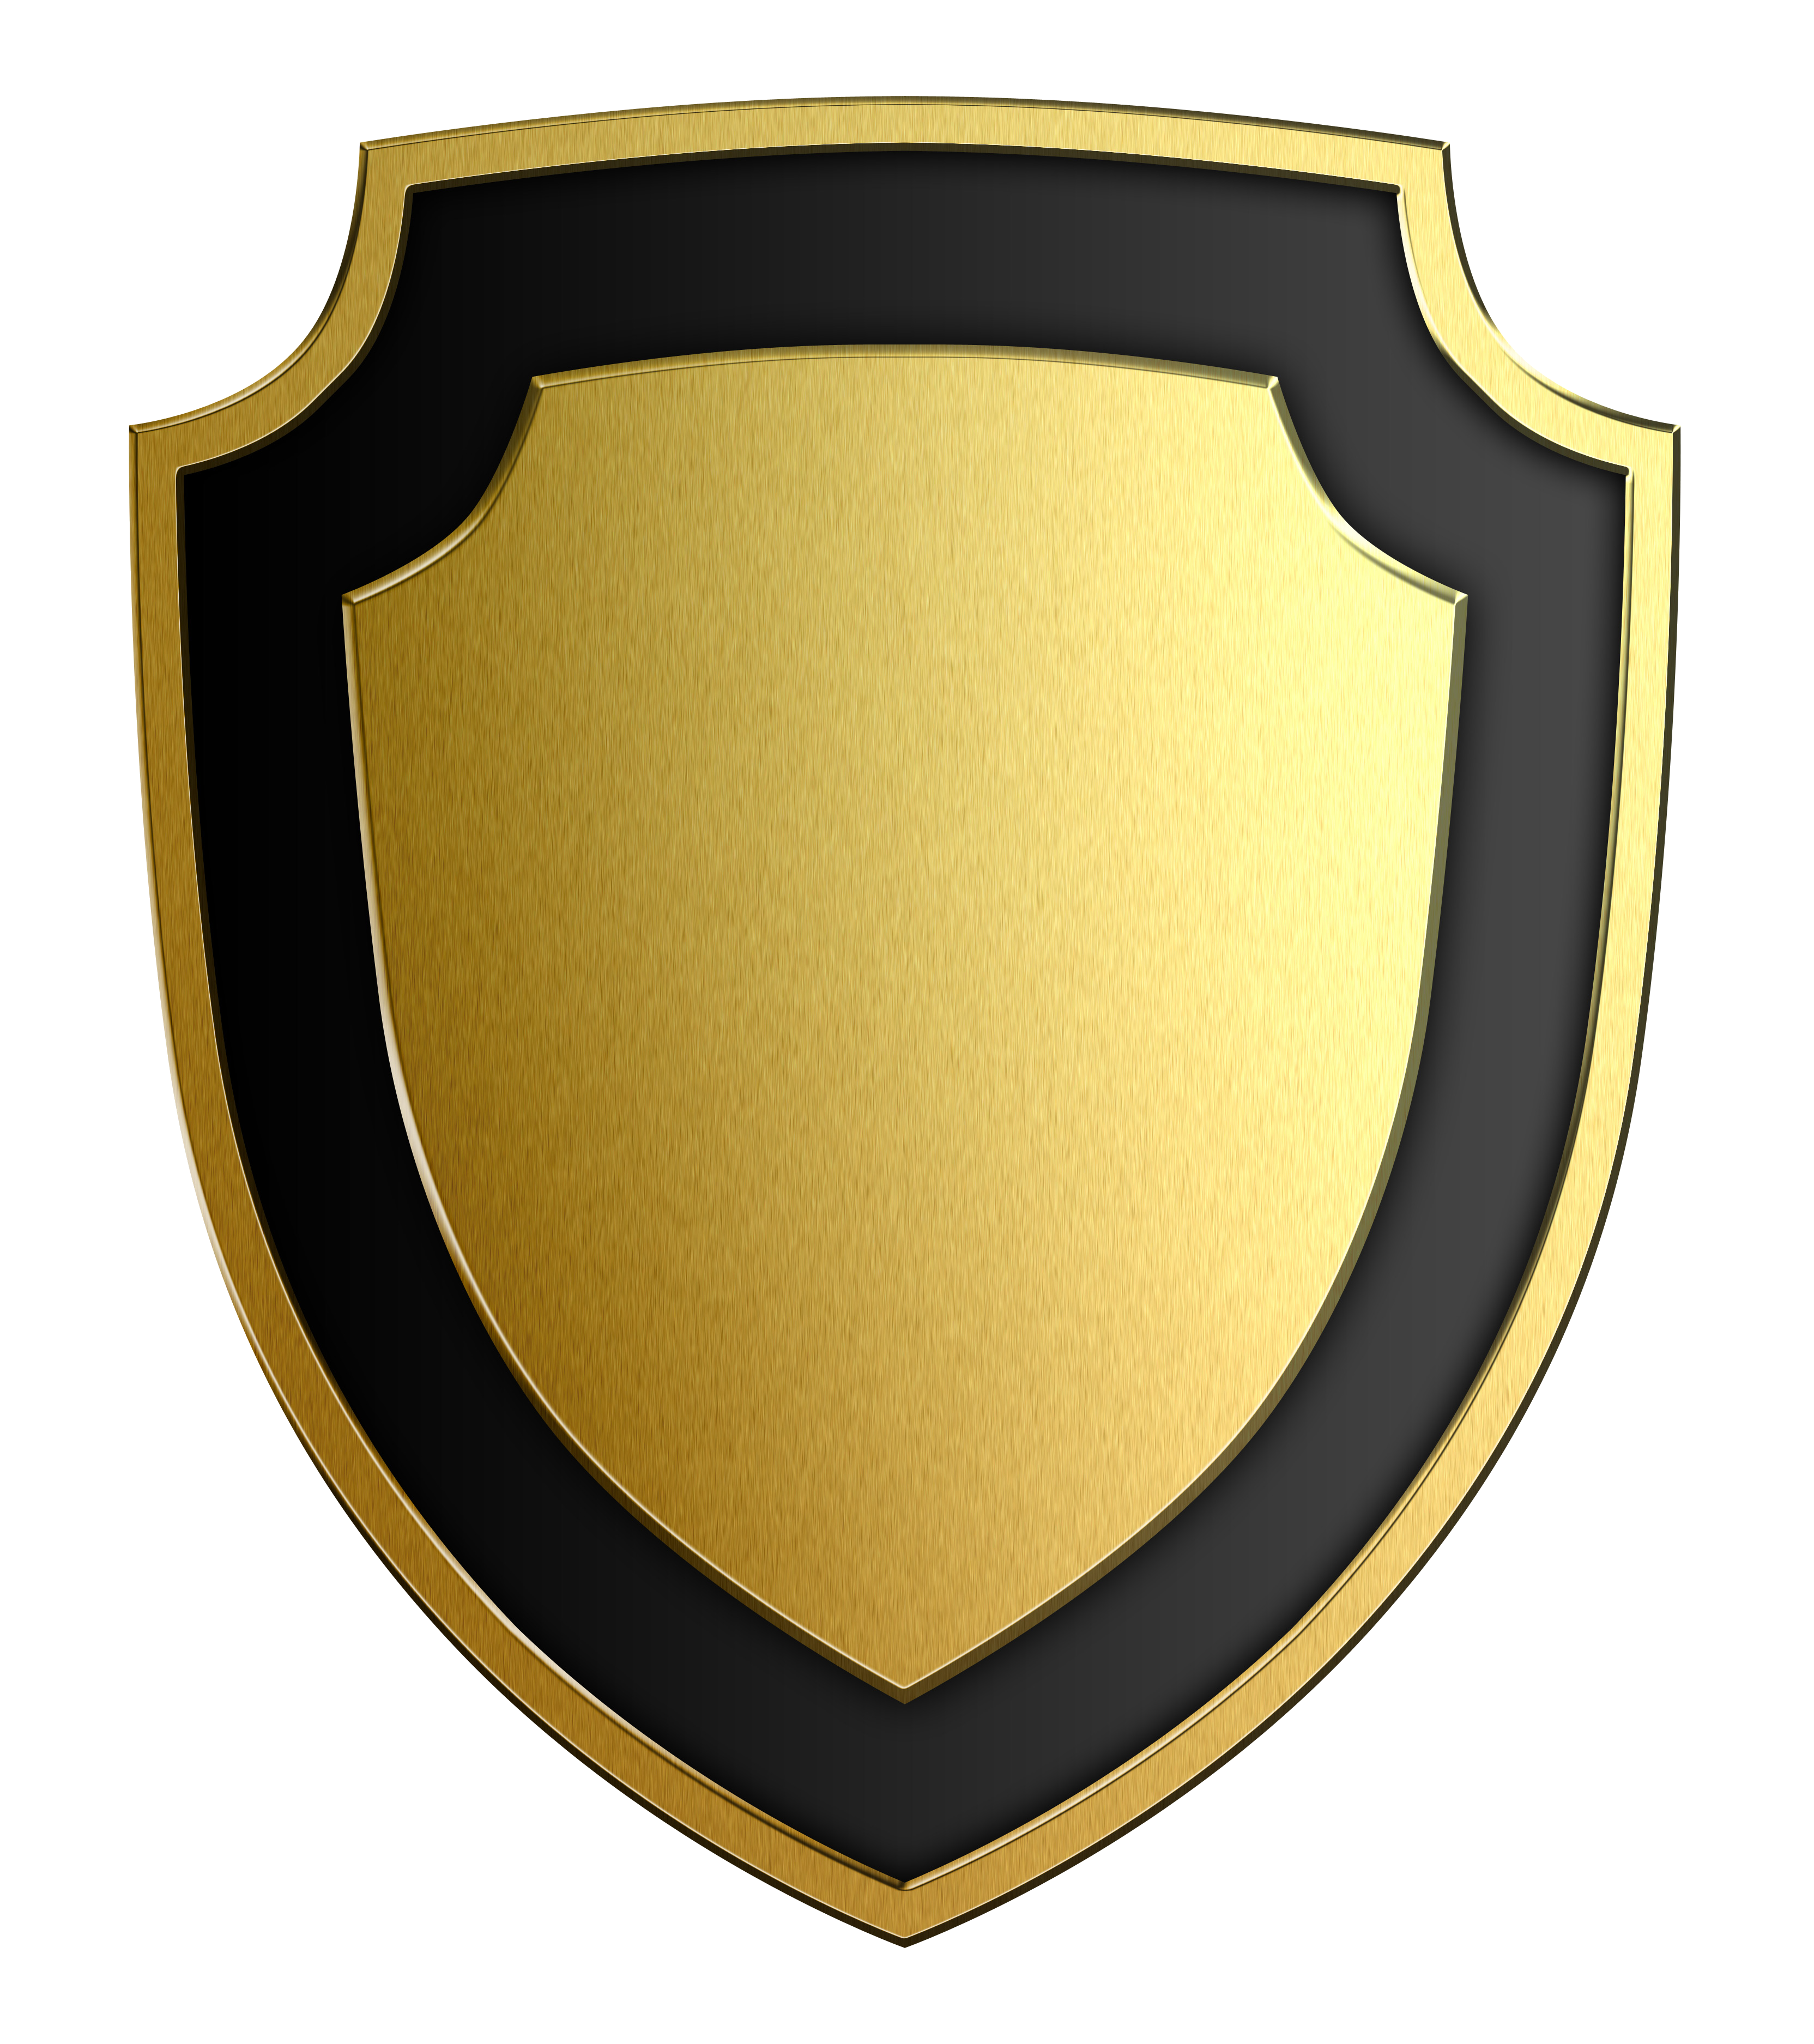 Clipart shield grunge. Five isolated stock photo